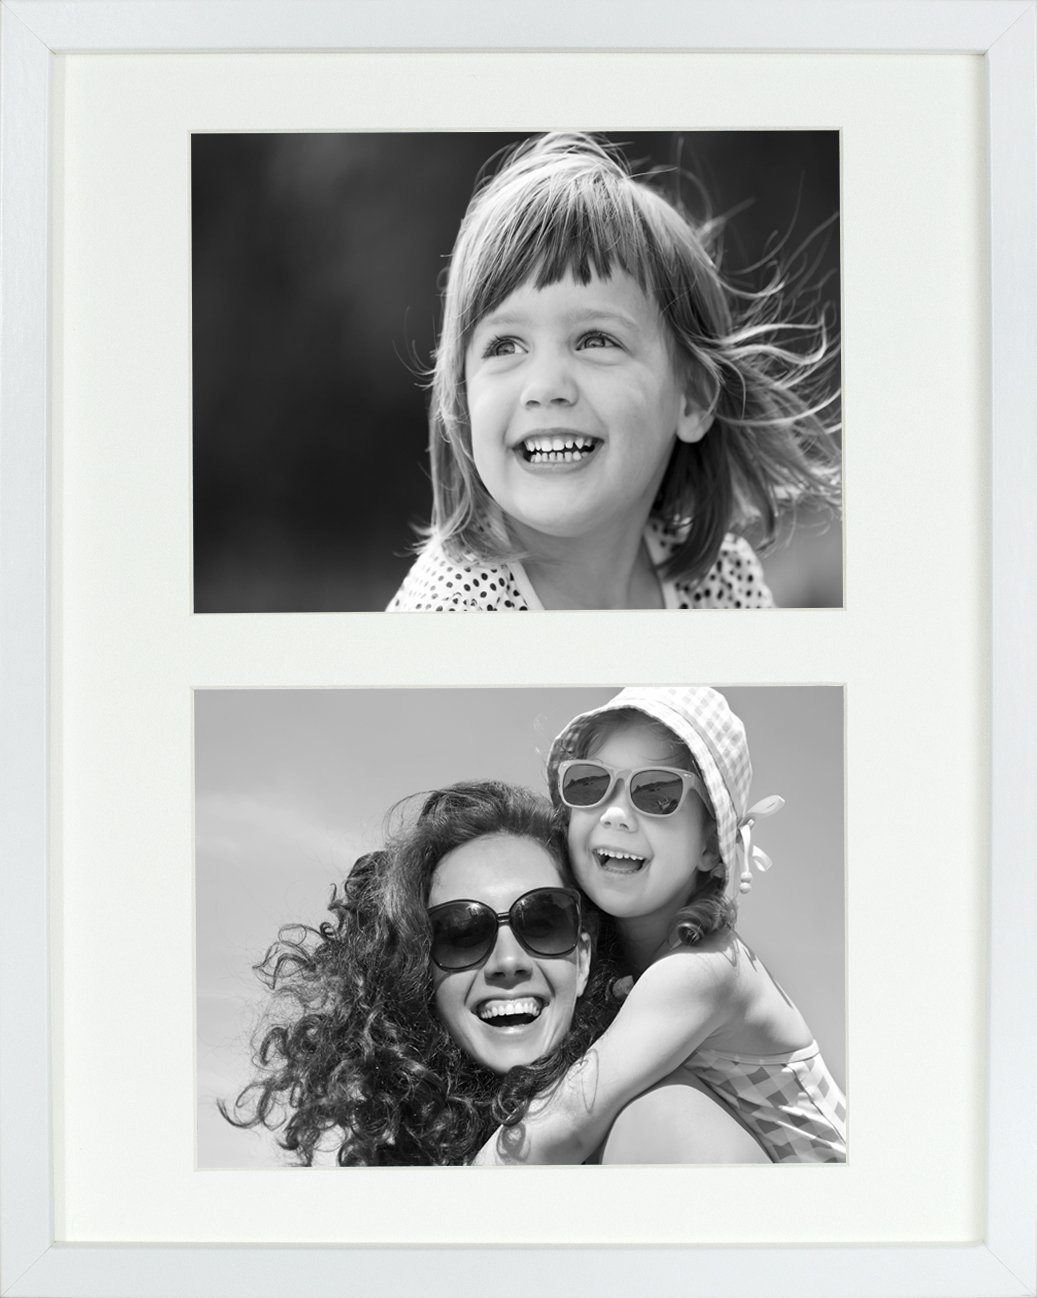 11 x 14-Inch 2 Aperture Picture Photo Frame with mount for 2 photos 6 x 8-Inch, WHITE